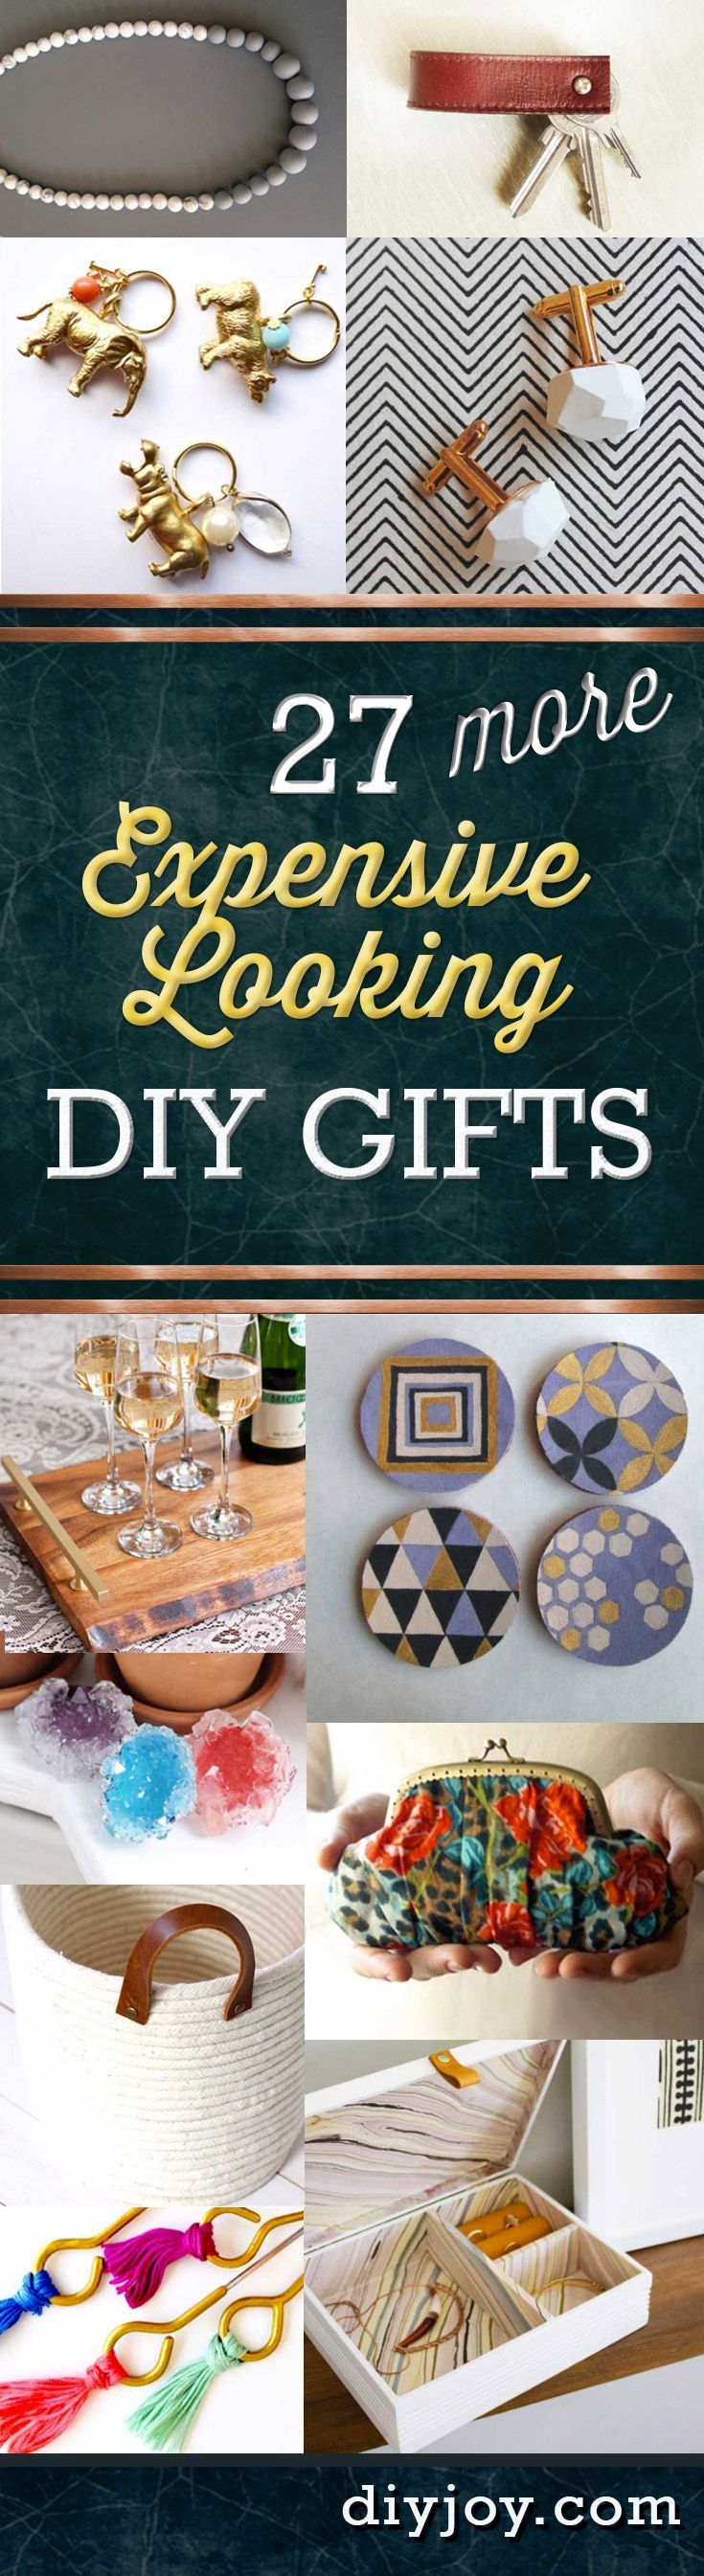 259 best images about diy ideas on pinterest crafts for Crafty christmas gifts